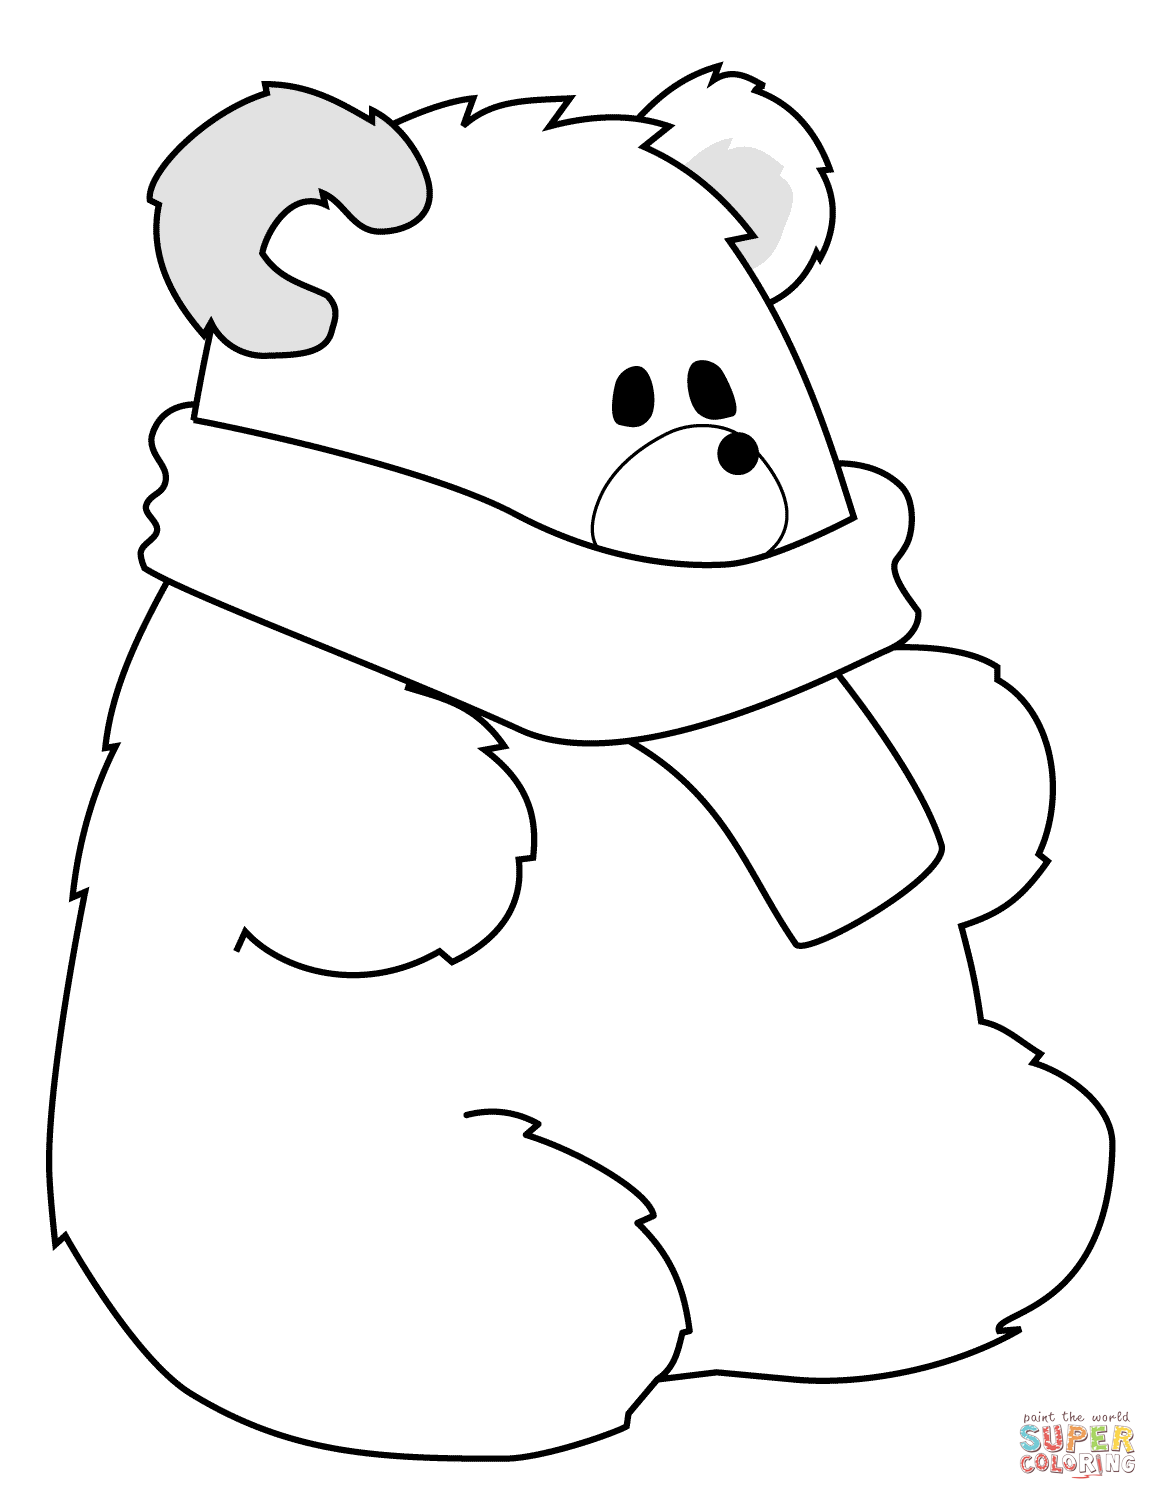 1158x1500 Coloring Pages Dazzling Coloring Pages Draw A Polar Bear Cute